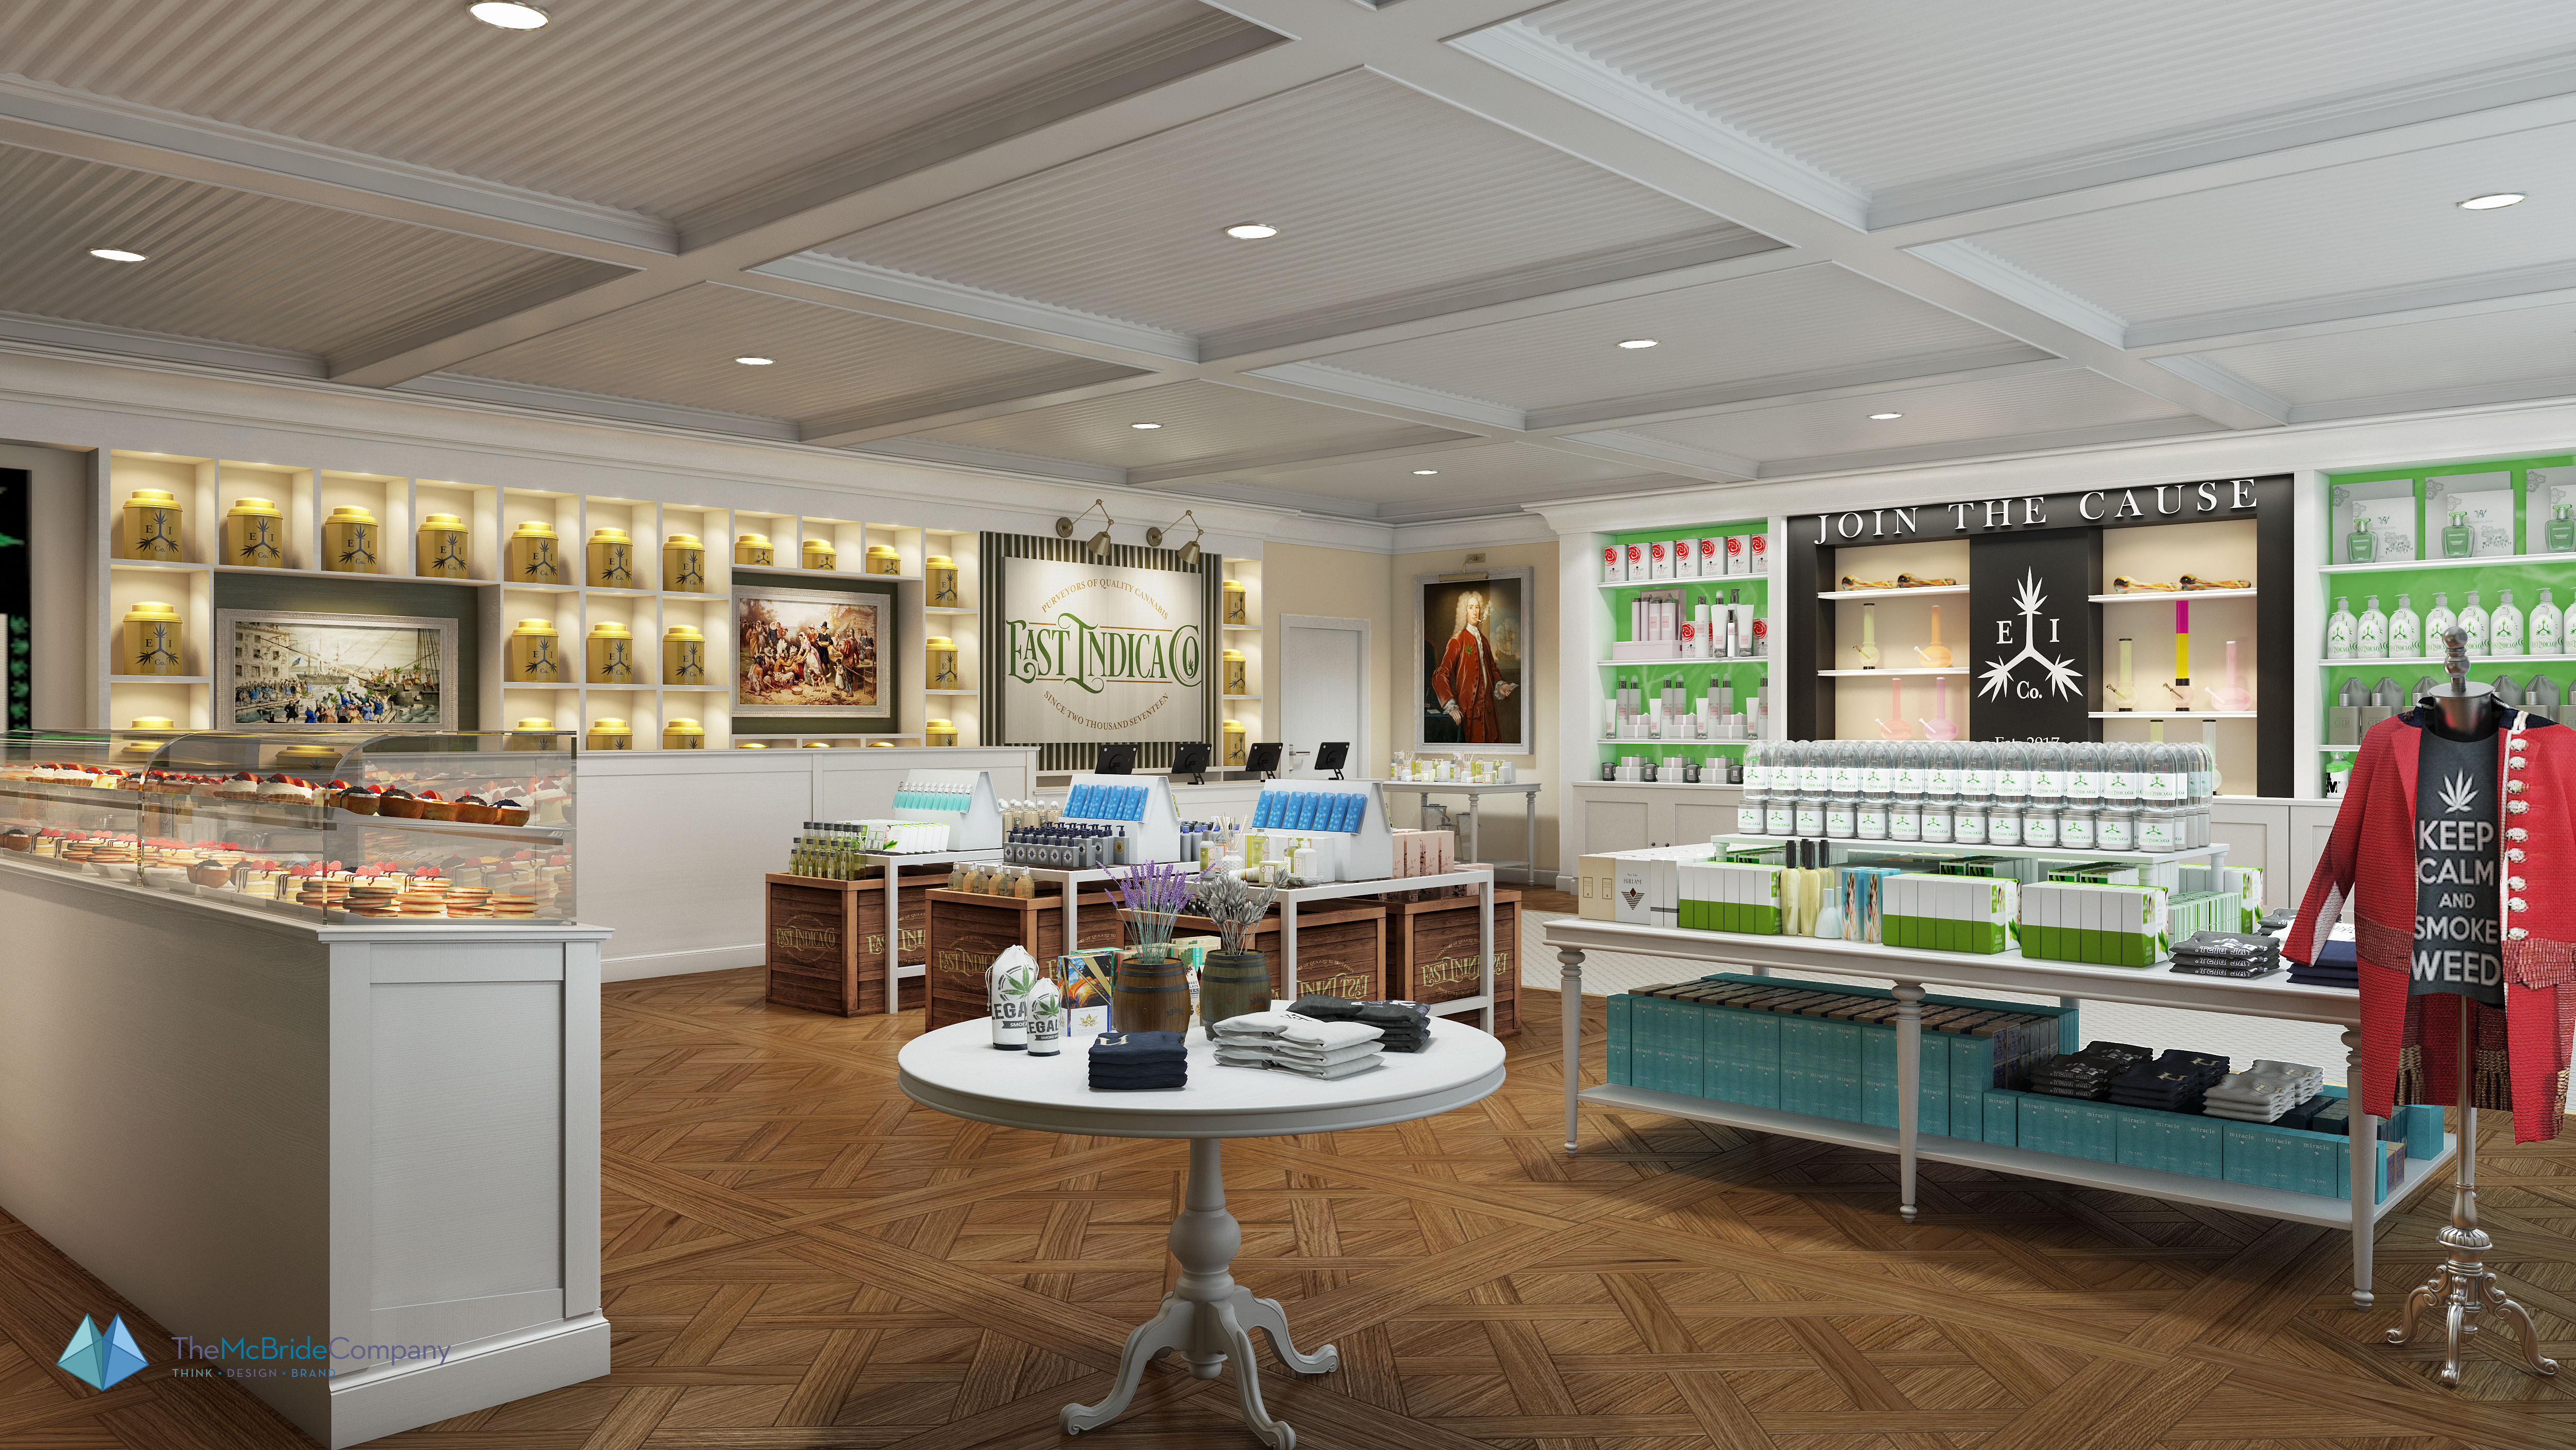 http://mcbridedesign.com/news/the-east-indica-company-a-21st-century-dispensary-with-an-18th-century-spirit